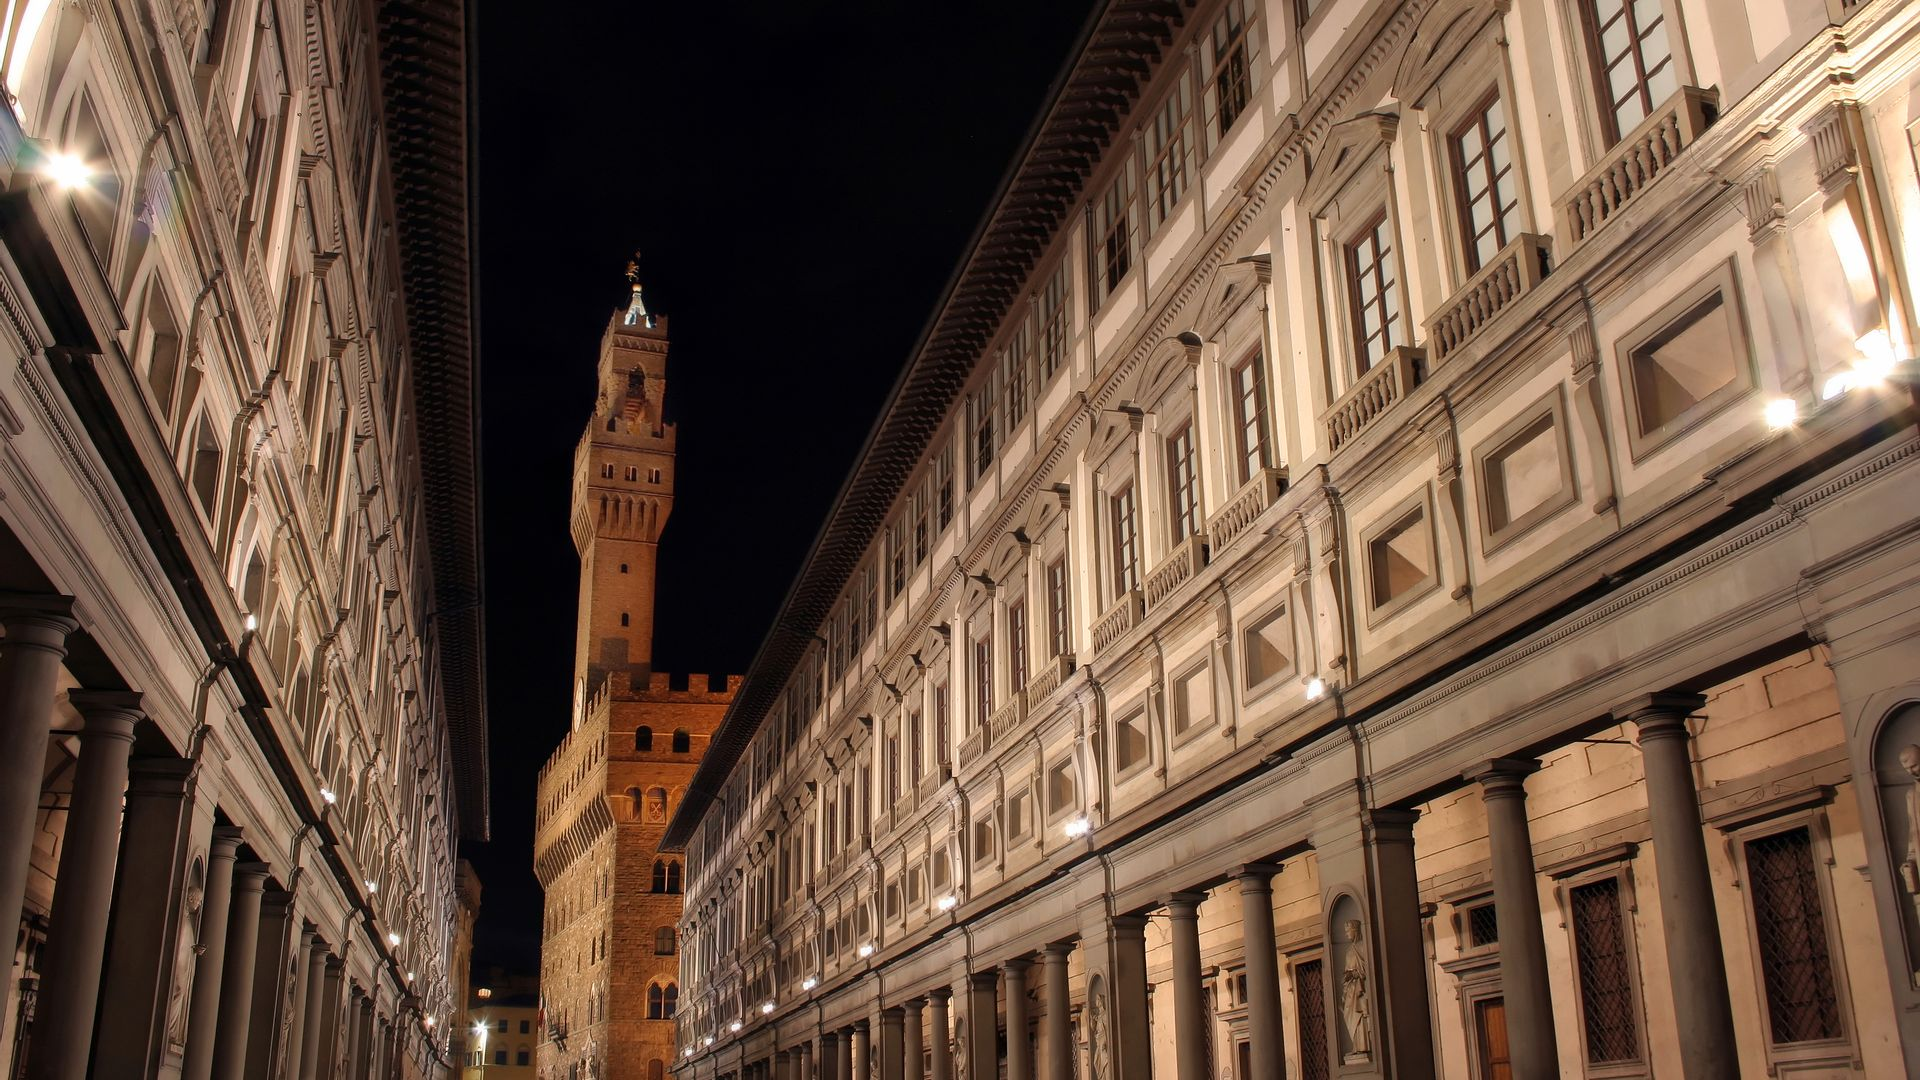 Musée des Offices, Florence - Italie ©iStock